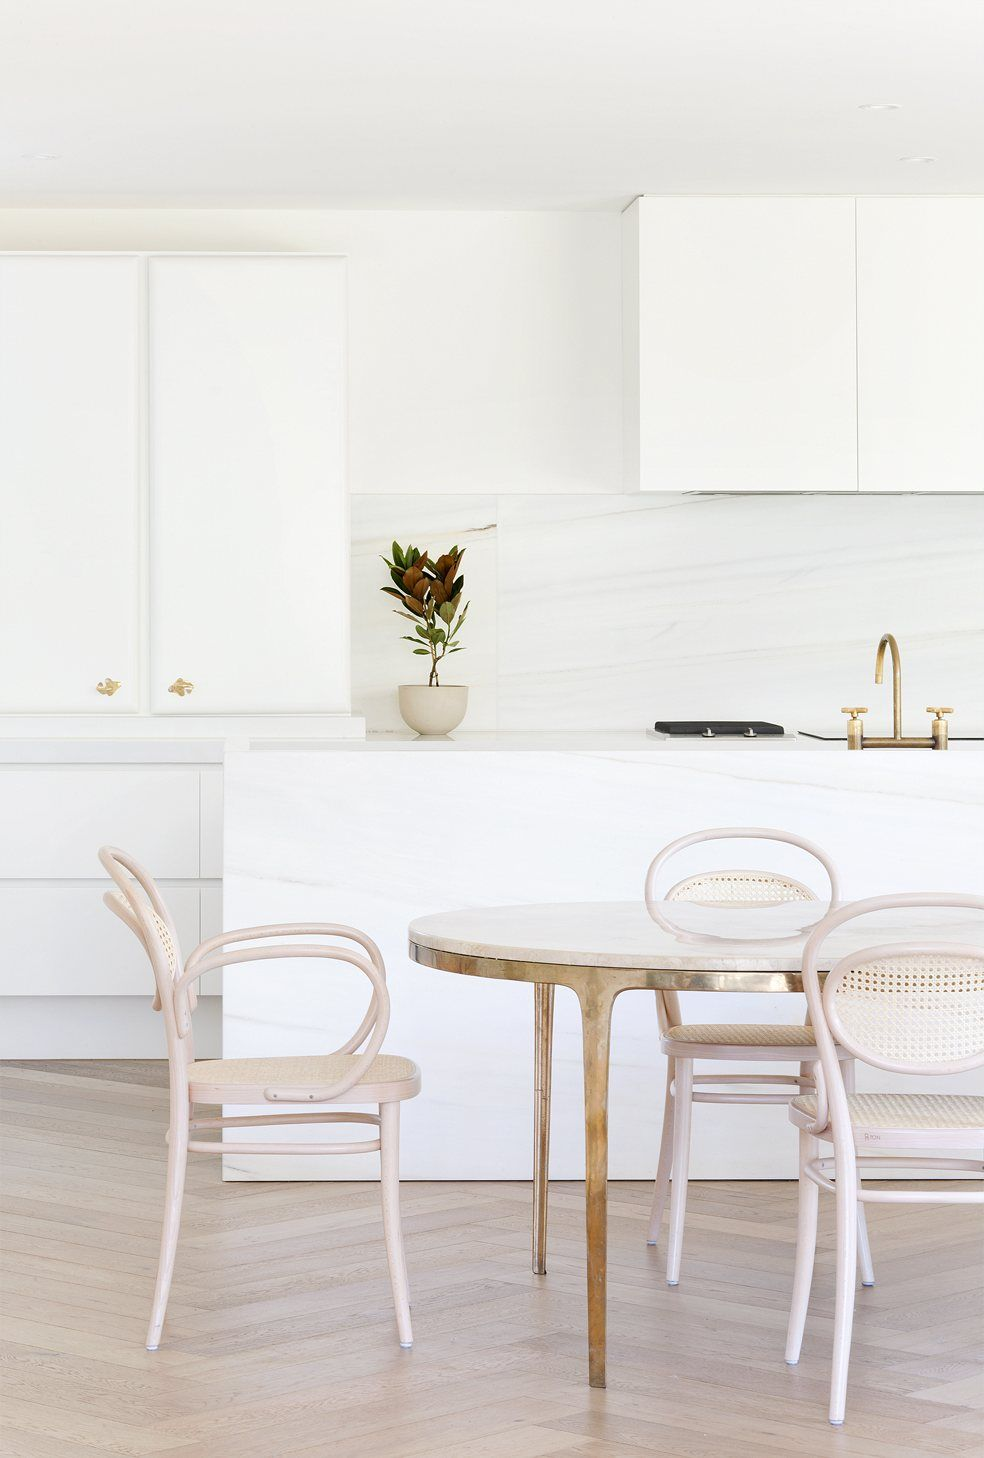 Kitchen And Dining Area. Toorak Residence By Hecker Guthrie. Photo By  Shannon McGrath.